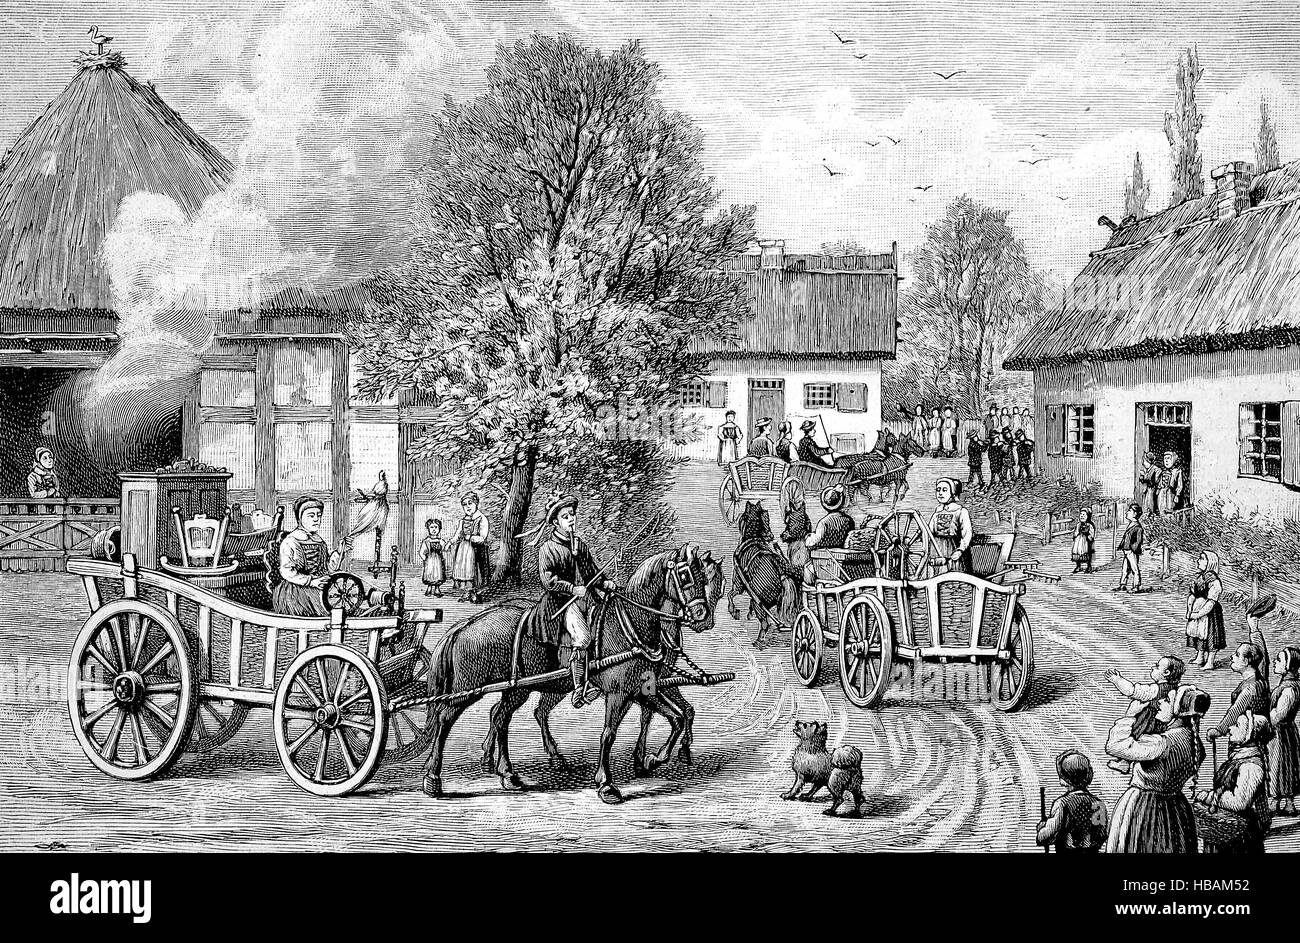 Wedding customs, Dowry tour, Pomerania, hictorical illustration from 1880 - Stock Image